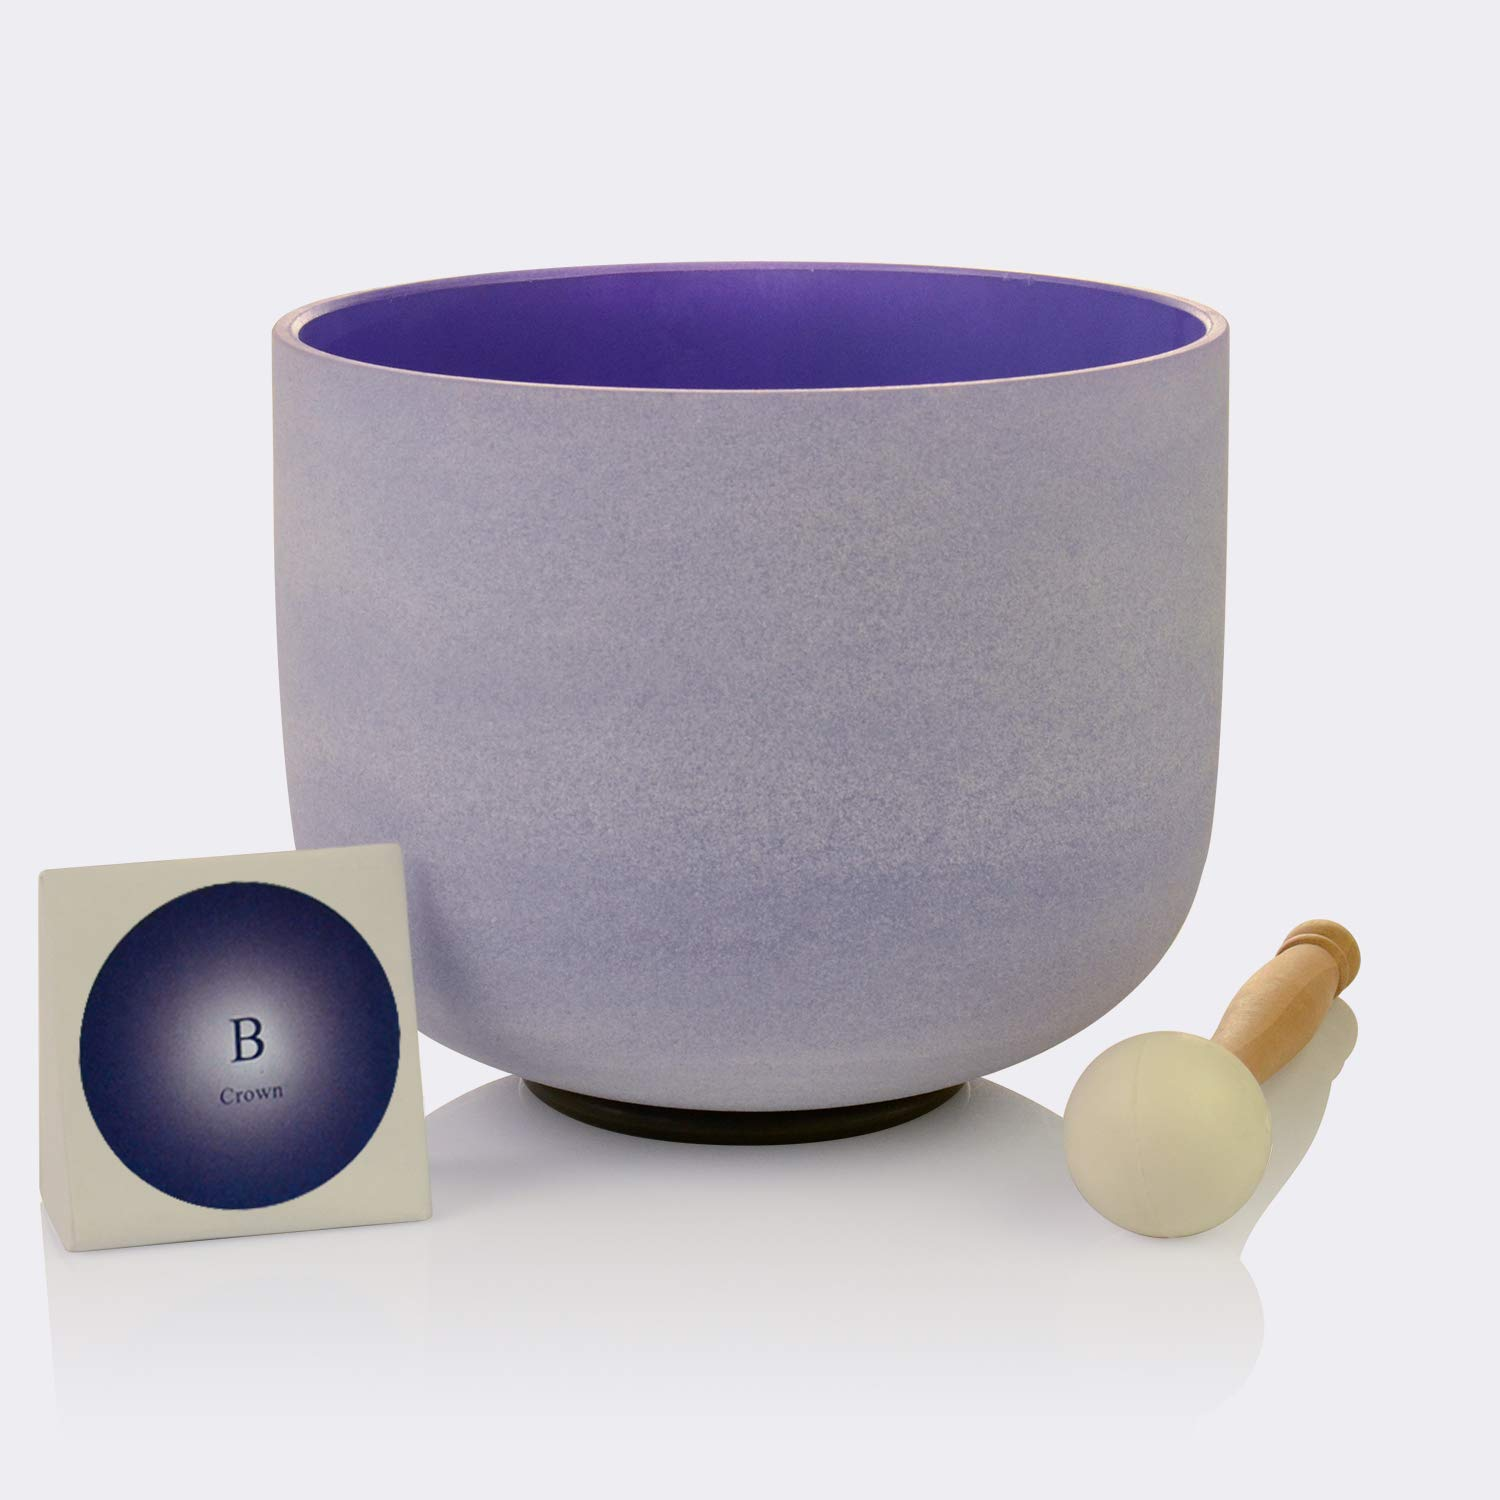 TOPFUND Singing Bowls B Note Crystal Singing Bowl Crown Chakra Purple Color 12 inch (O ring and Rubber Mallet Included) by TOPFUND (Image #1)